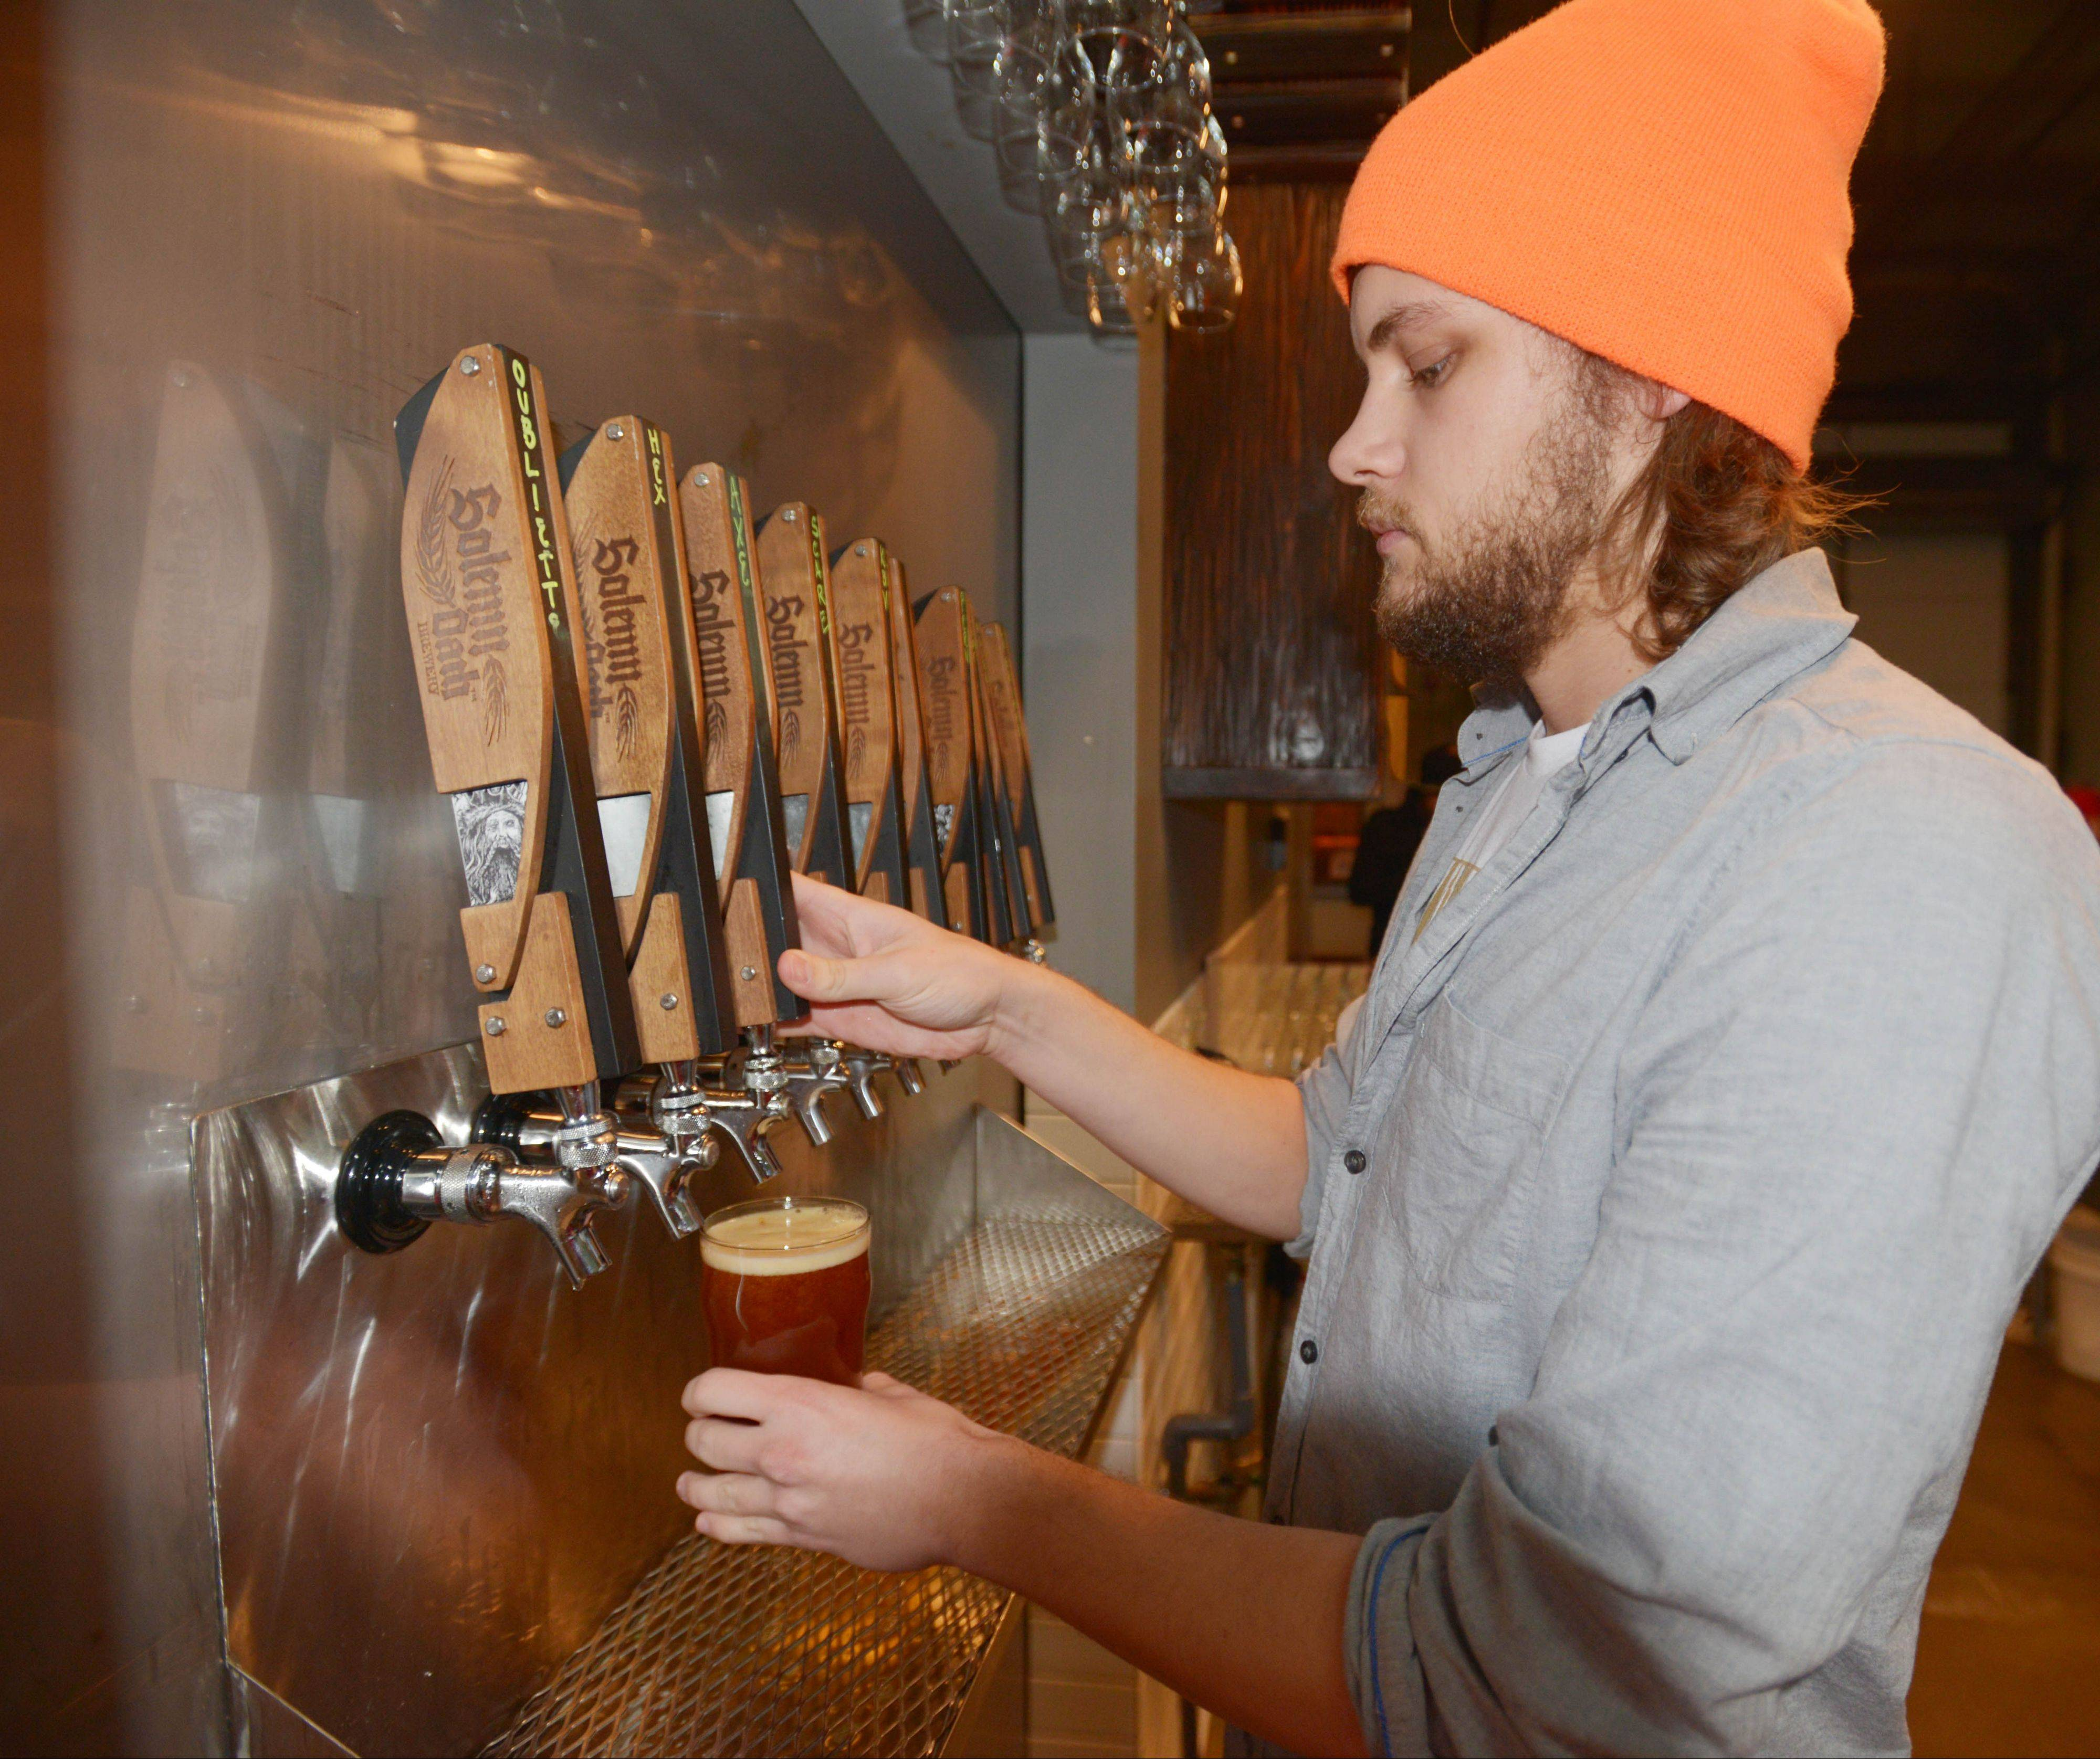 Lou Waldmeir taps a beer at Solemn Oath Brewery in Naperville.